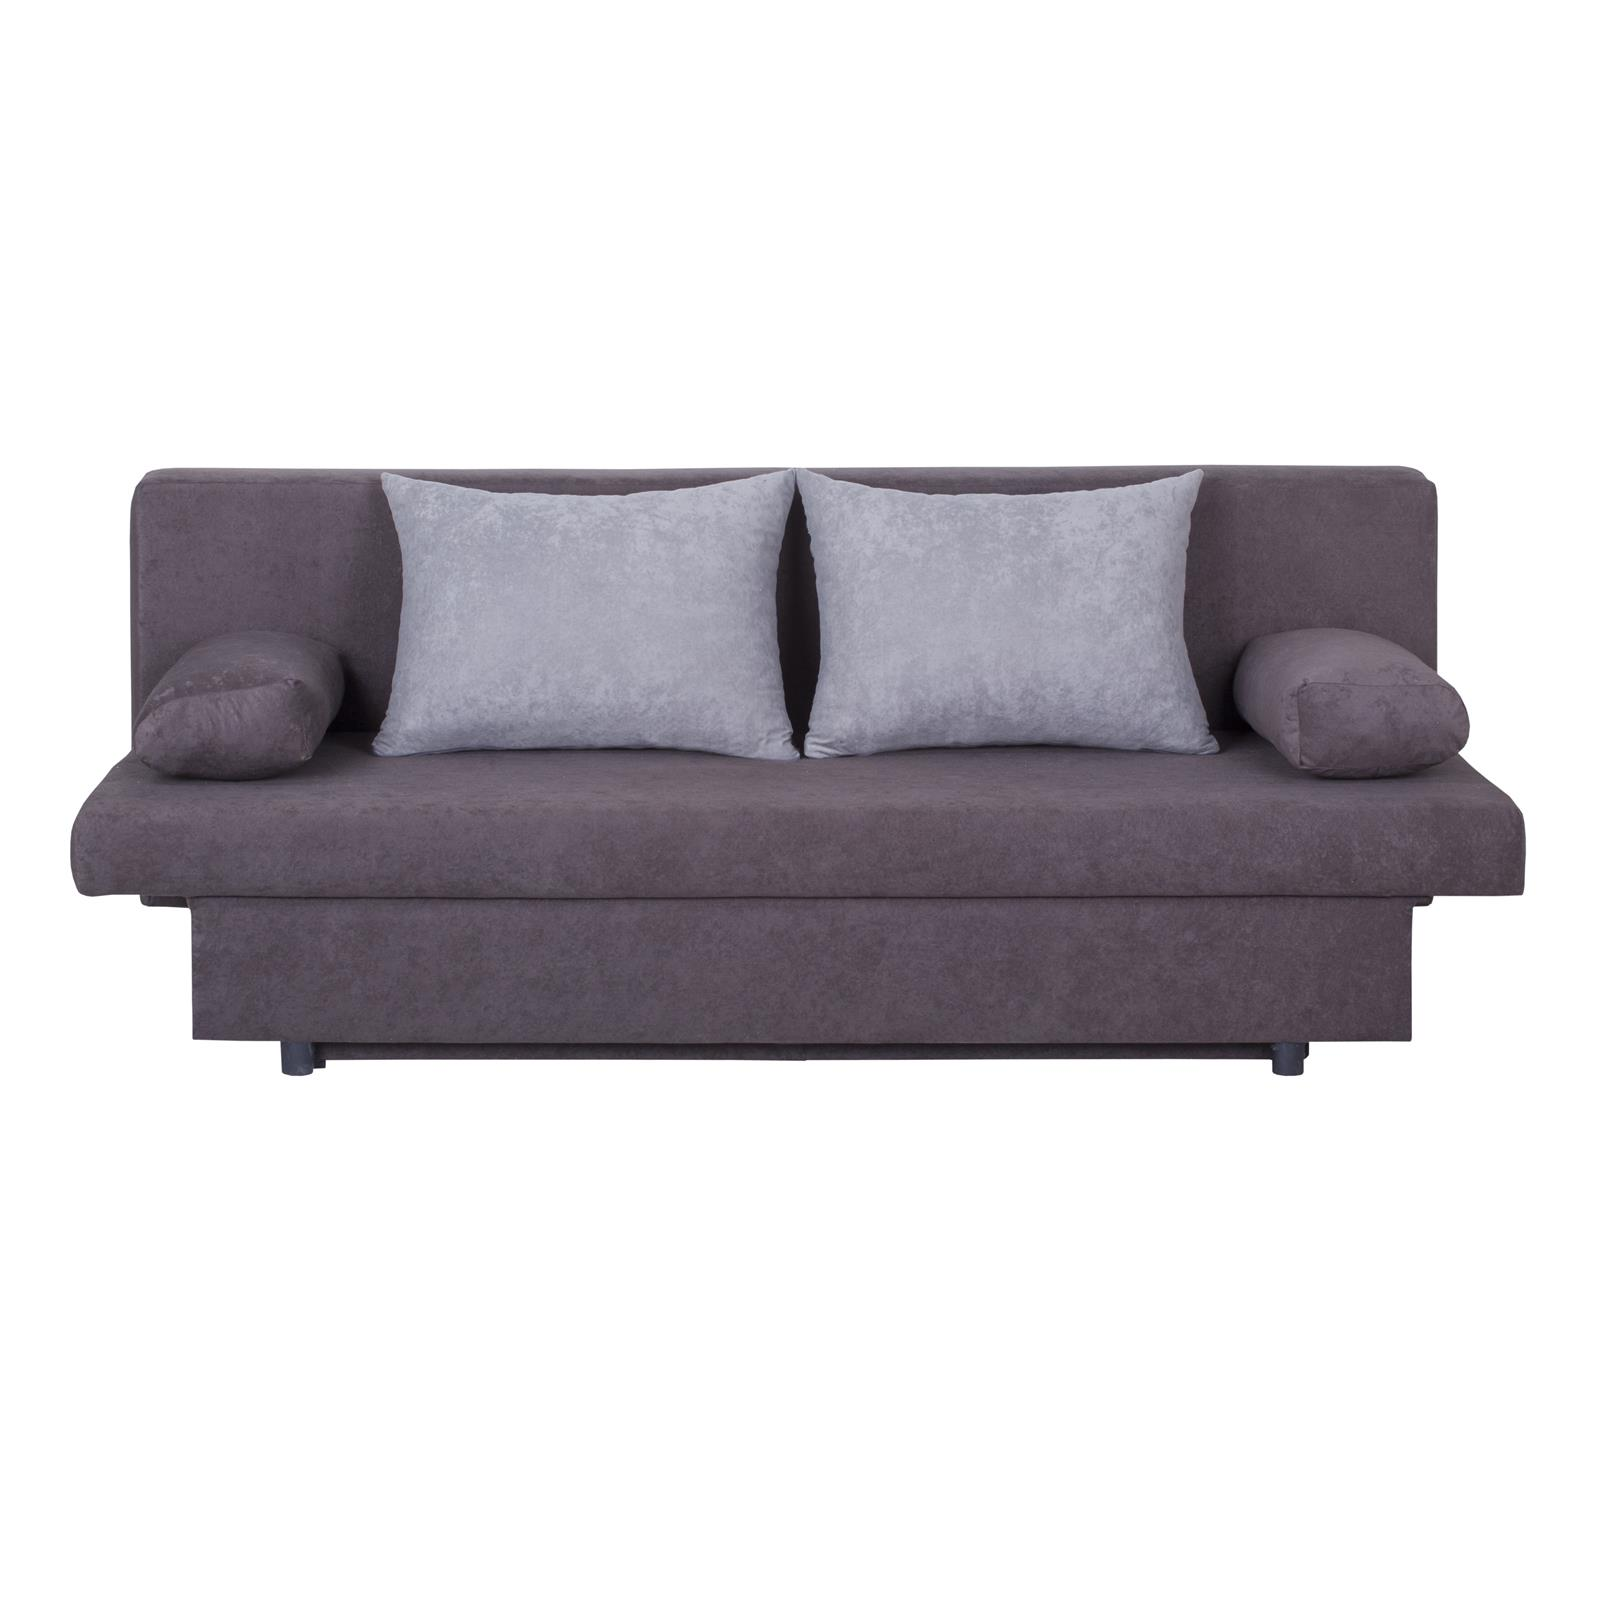 Couch 2 sitzer 2 sitzer modell ys 2008 sessel couch sofa for Sofa garnitur